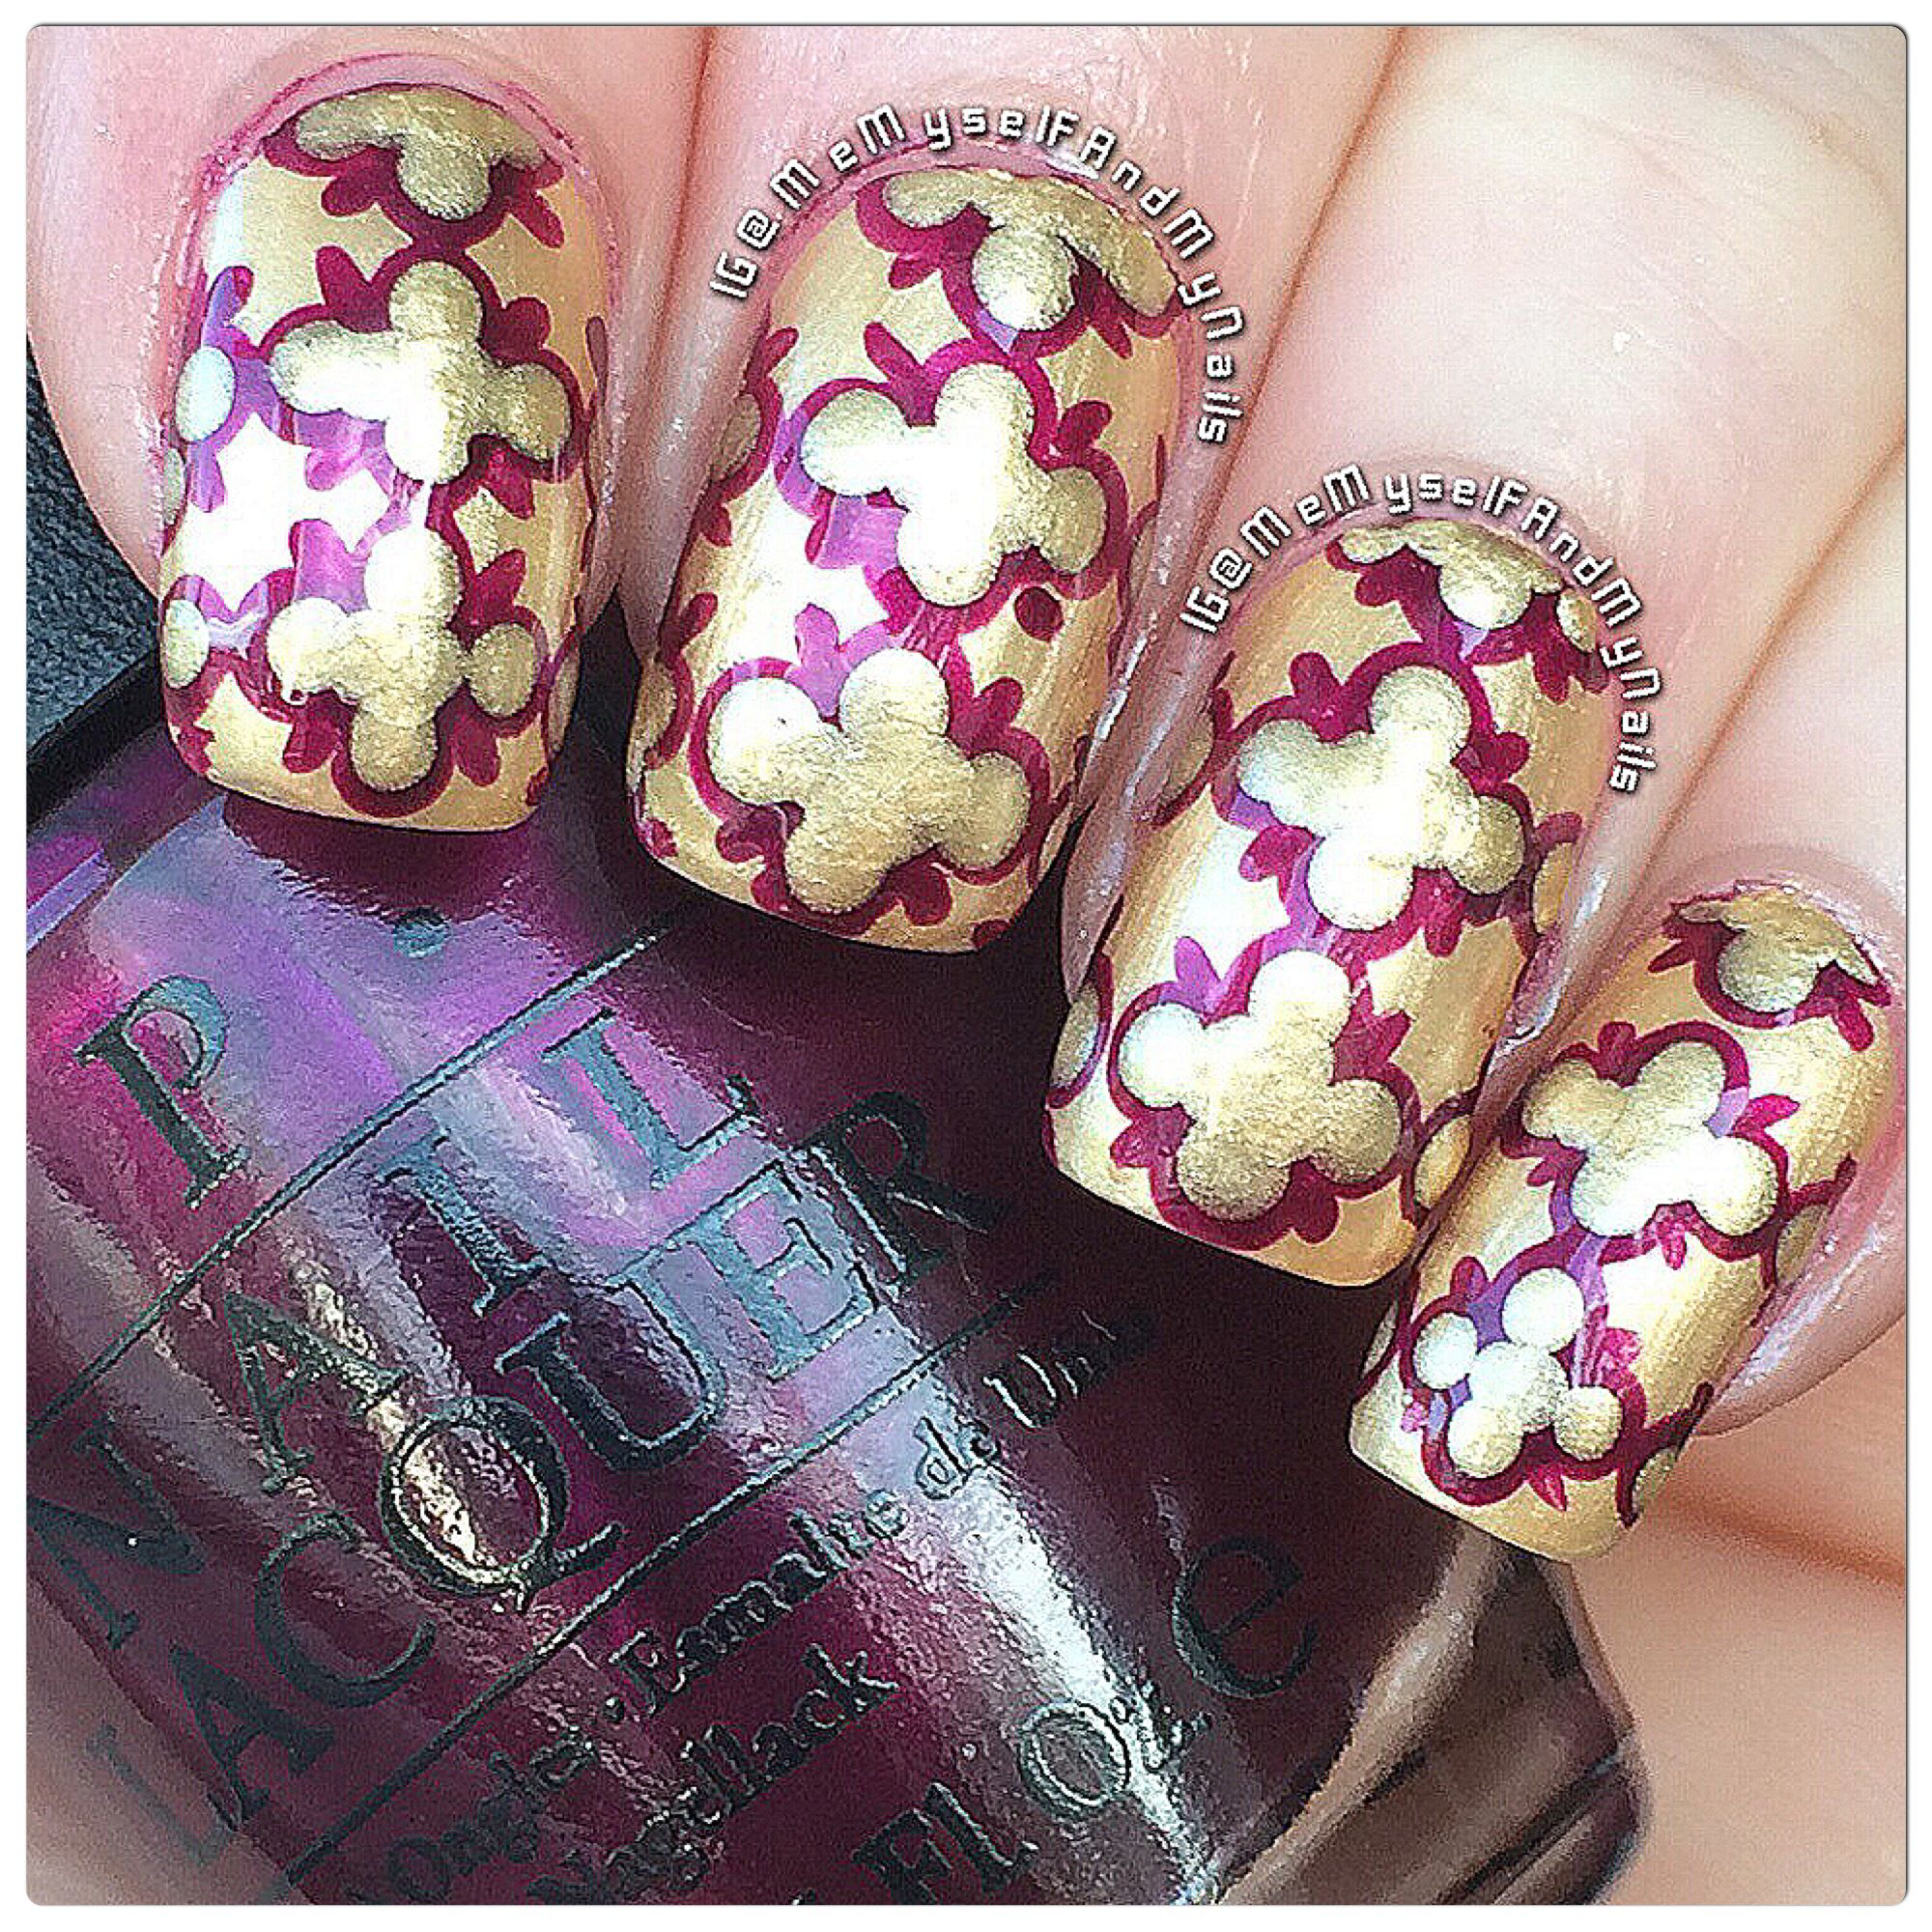 Quatrefoil pattern using #OPI 'Rollin' In Cashmere' and 'Kiss Me-Or Elf!' from the 2014 Gwen Stefani holiday collection!